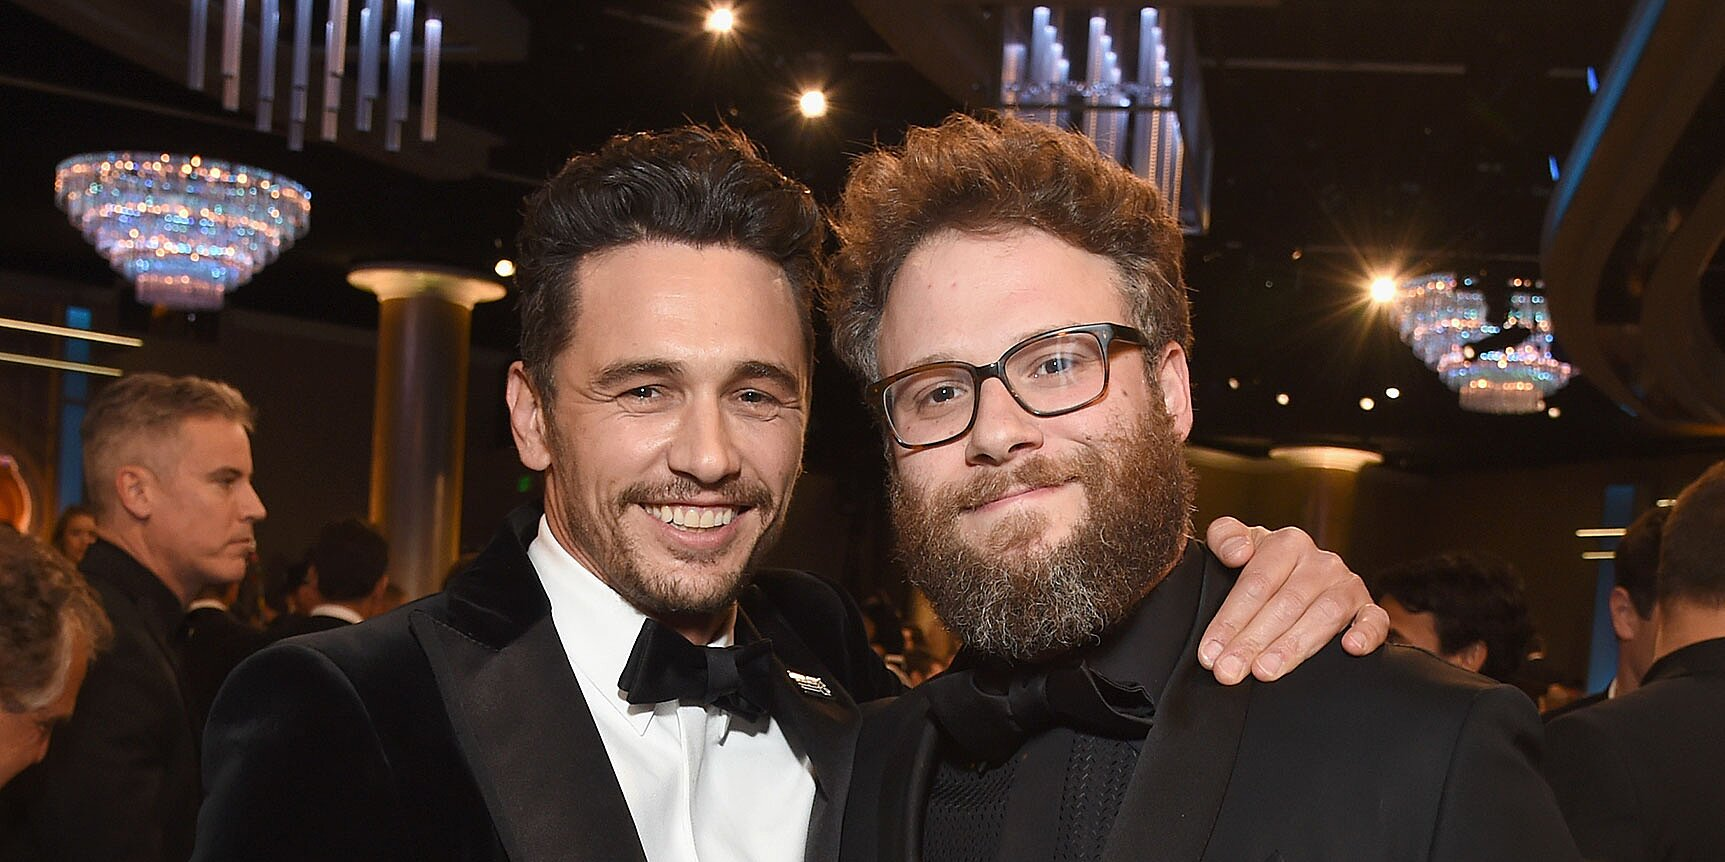 Seth Rogen Doesn't Plan to Work with James Franco After Claims, Says Dynamic Has 'Changed'.jpg